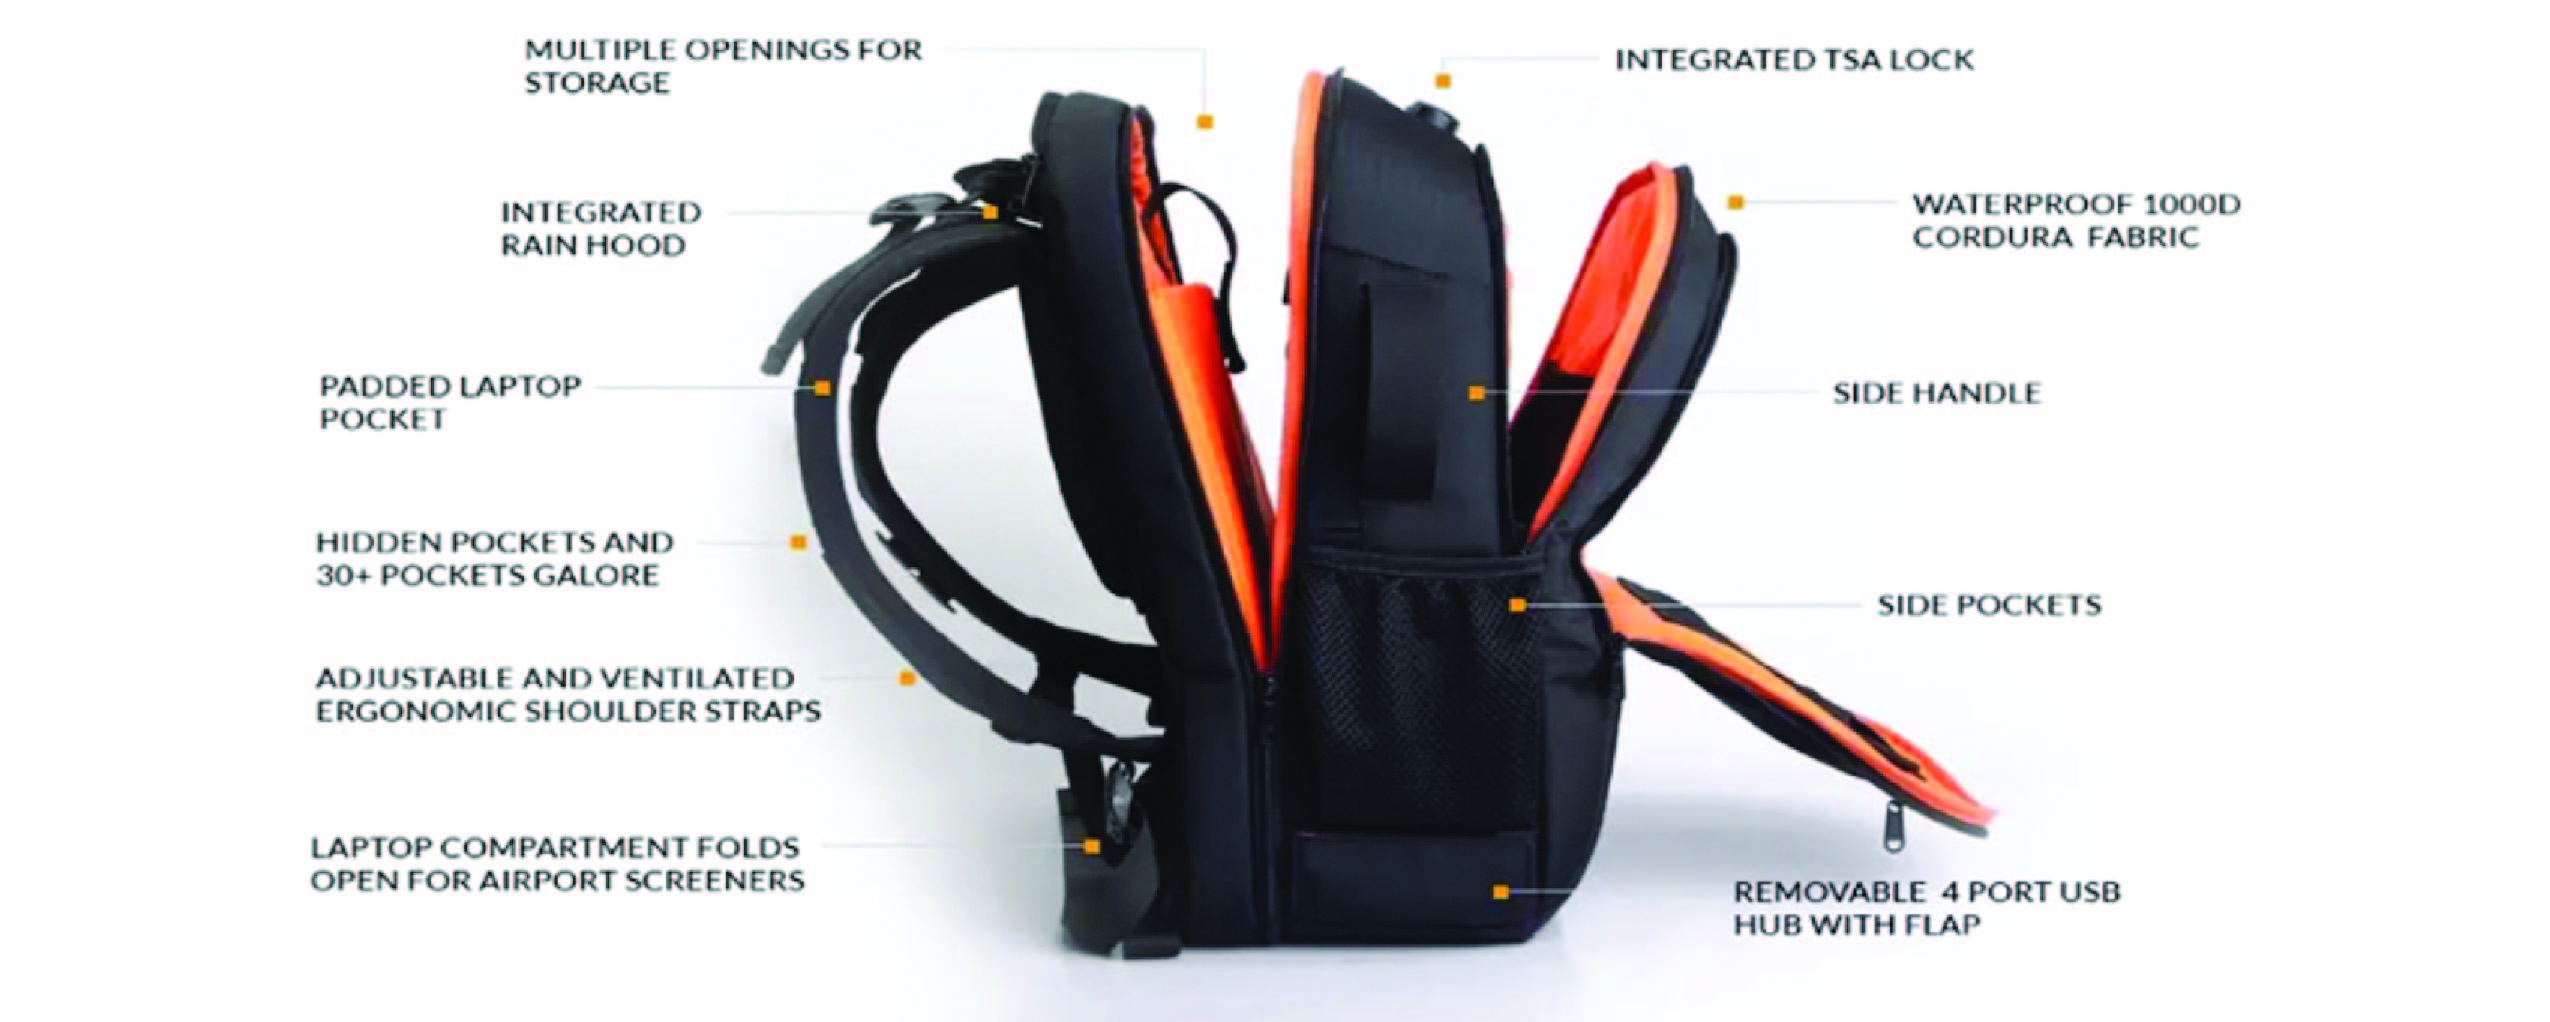 A photograph of the iBackPack labels its features: multiple openings for storage, integrated rain hood, padded laptop pocket, hidden pockets and 30+ pockets galore, adjustable and ventilated ergonomic shoulder straps, laptop compartment folds open for airport screeners, integrated TSA lock, waterproof 1000D cordura fabric, side handle, side pockets, and a removable 4-port USB hub with flap.